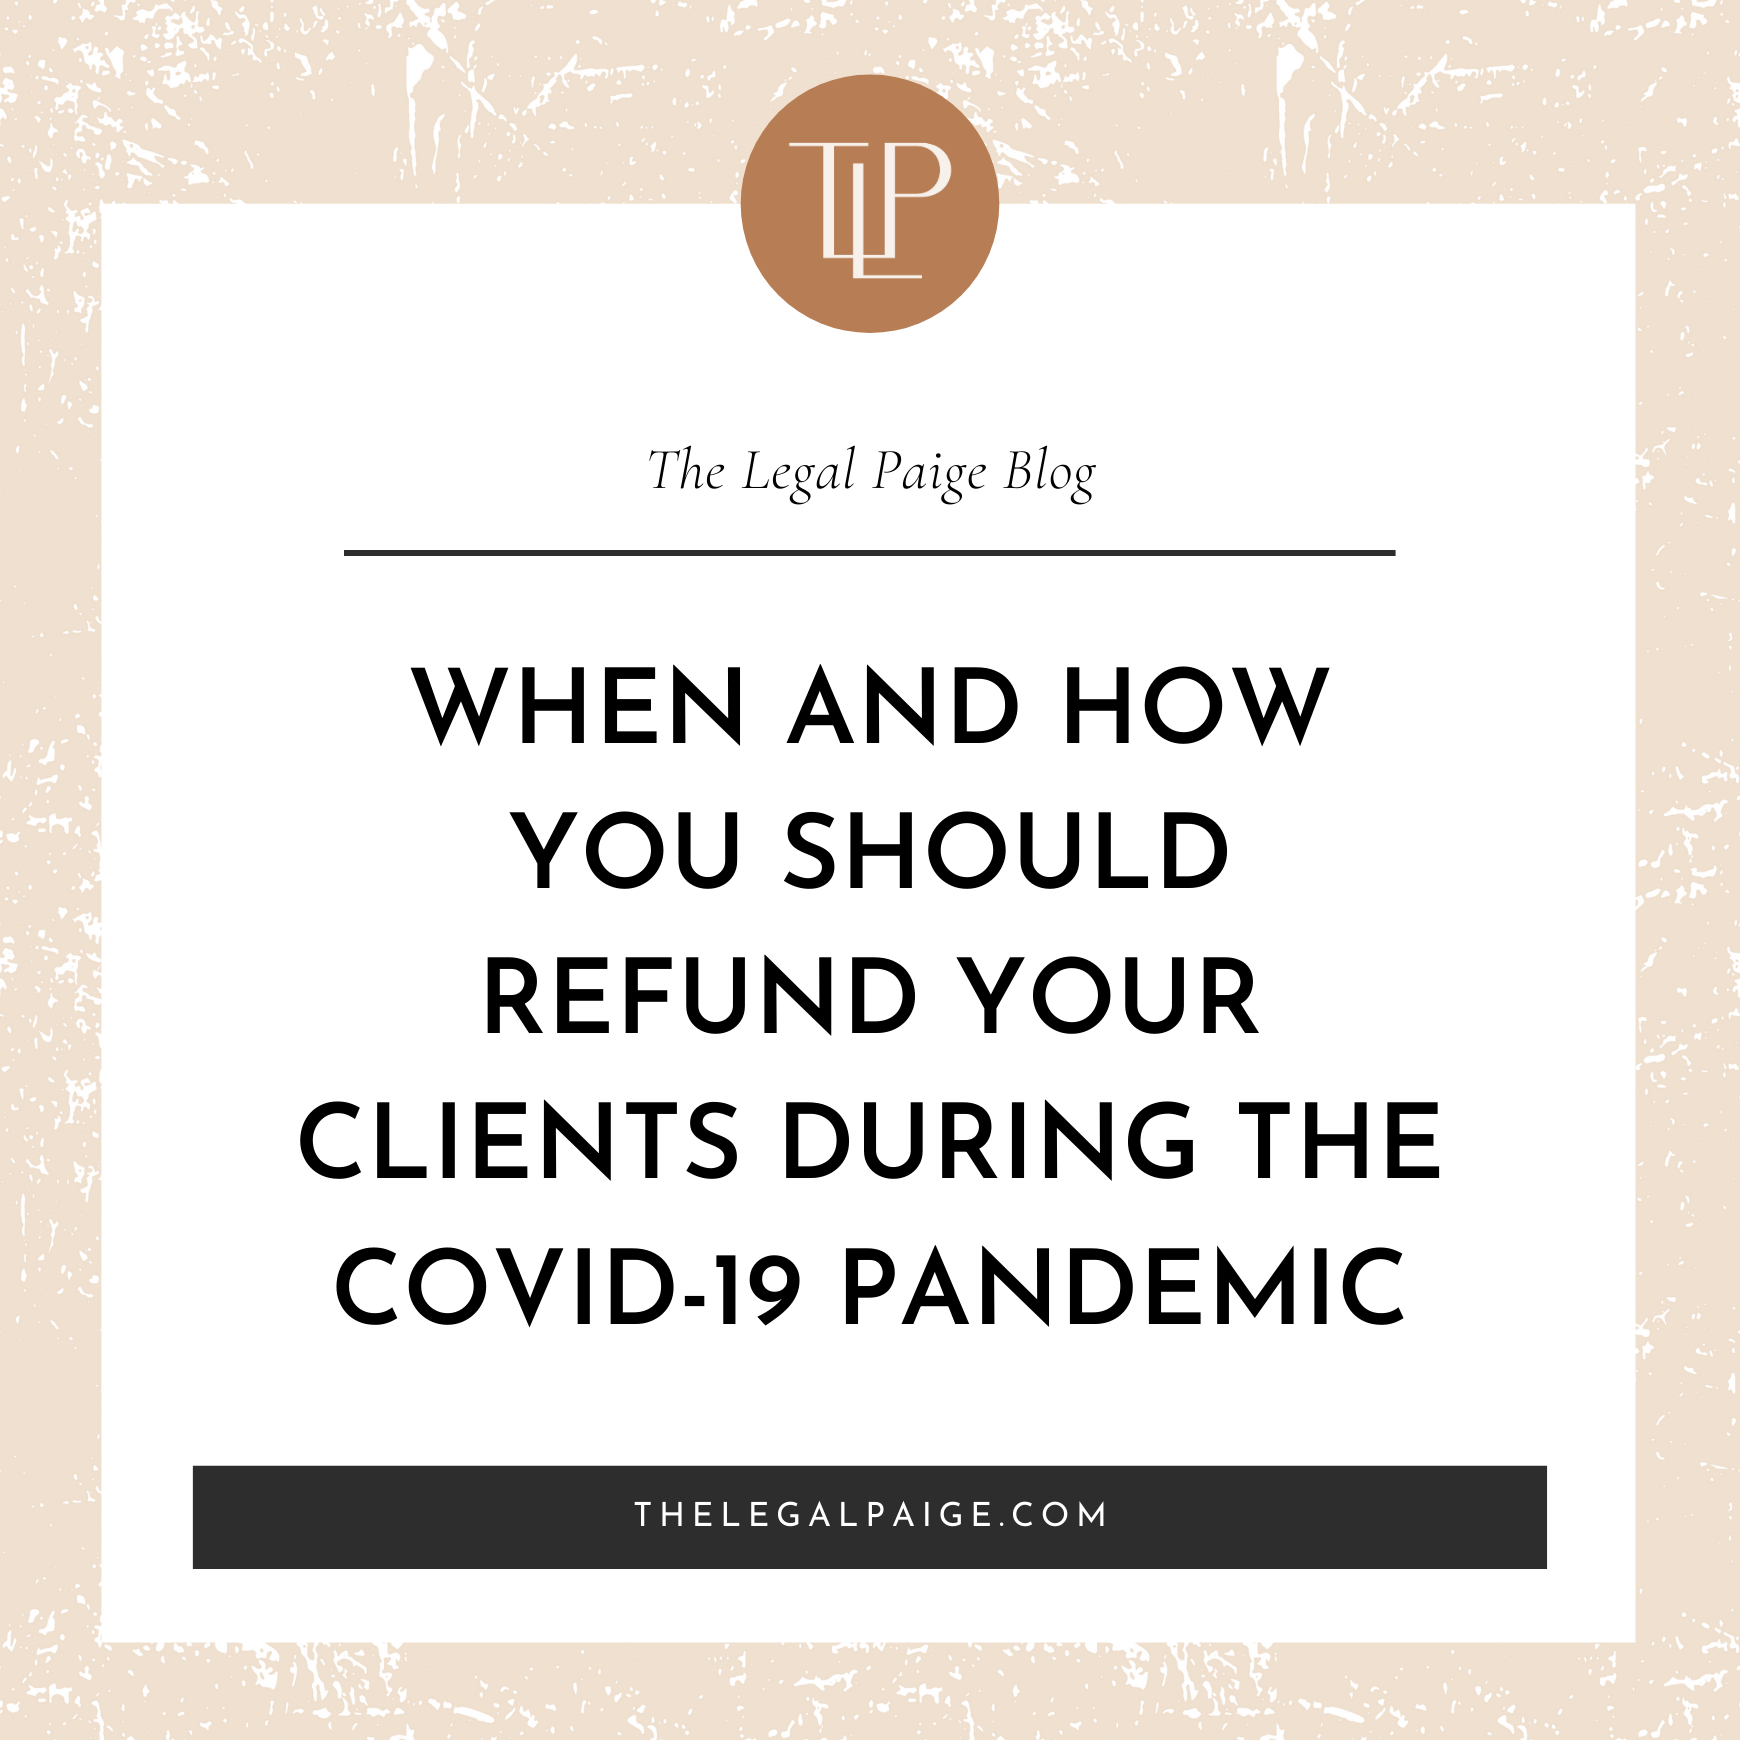 WHEN and HOW You Should Go About Refunding Your Clients During the Covid-19 Pandemic